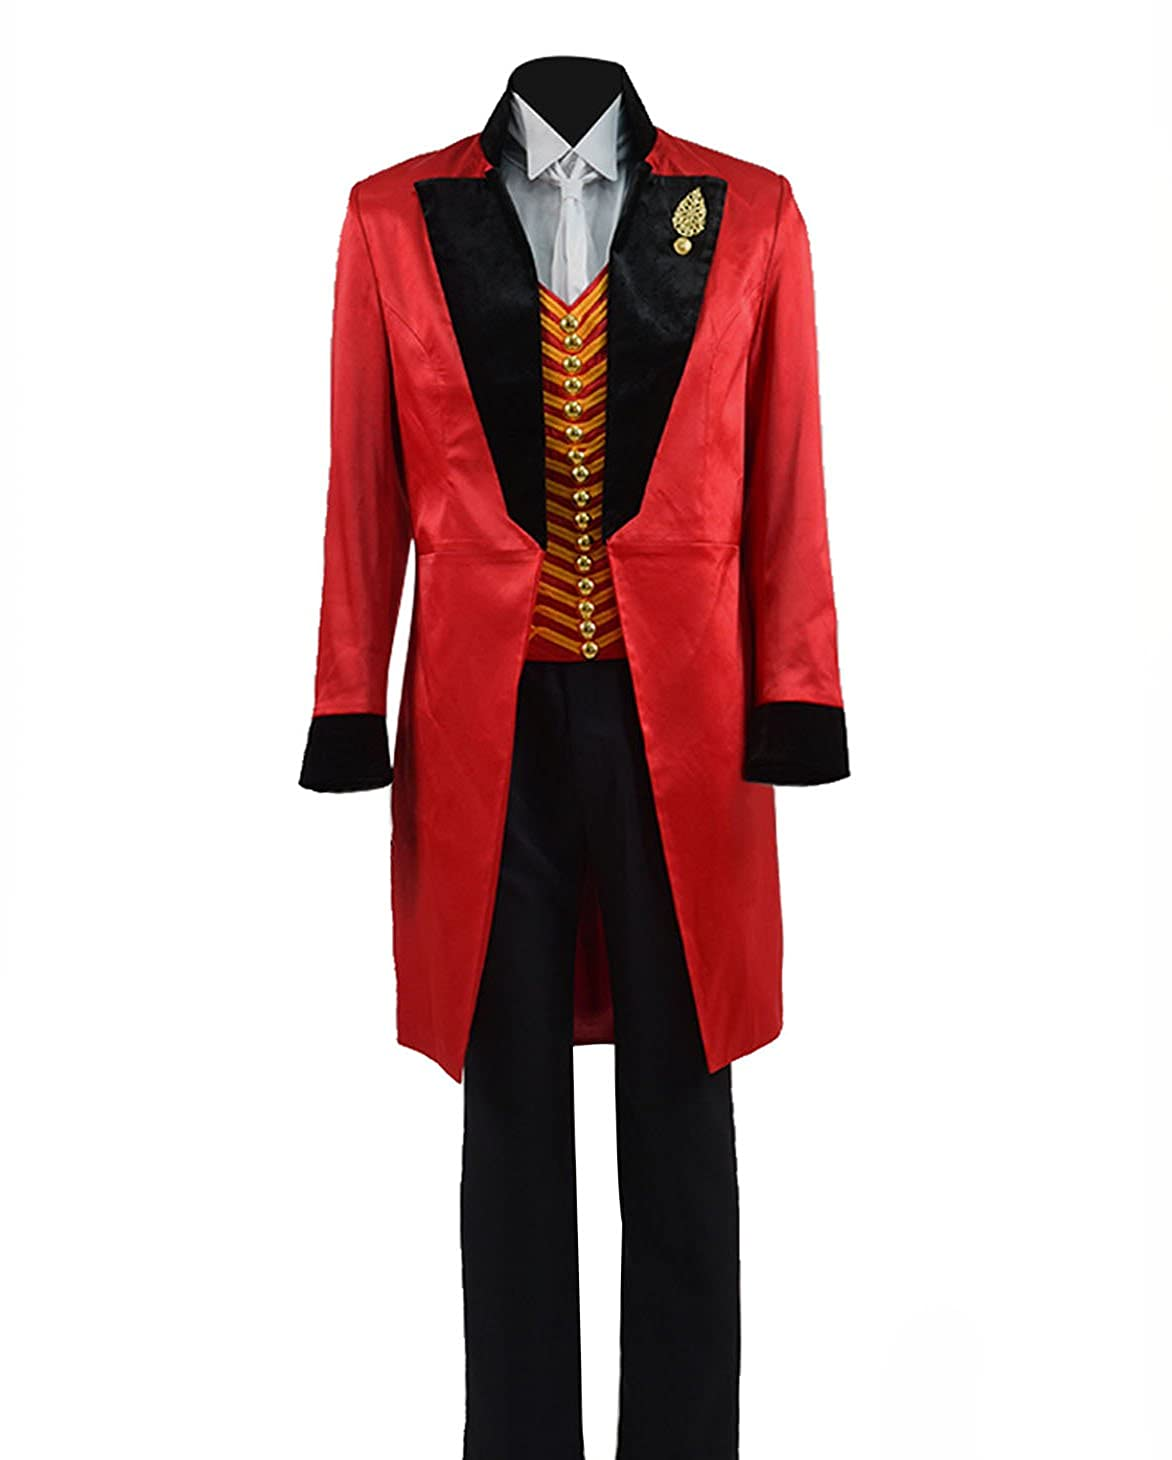 PT Barnum Cosplay Costume Performance Uniform Showman Party Suit Mens Circus Stage Halloween Outfit ringmaster greatest showman style